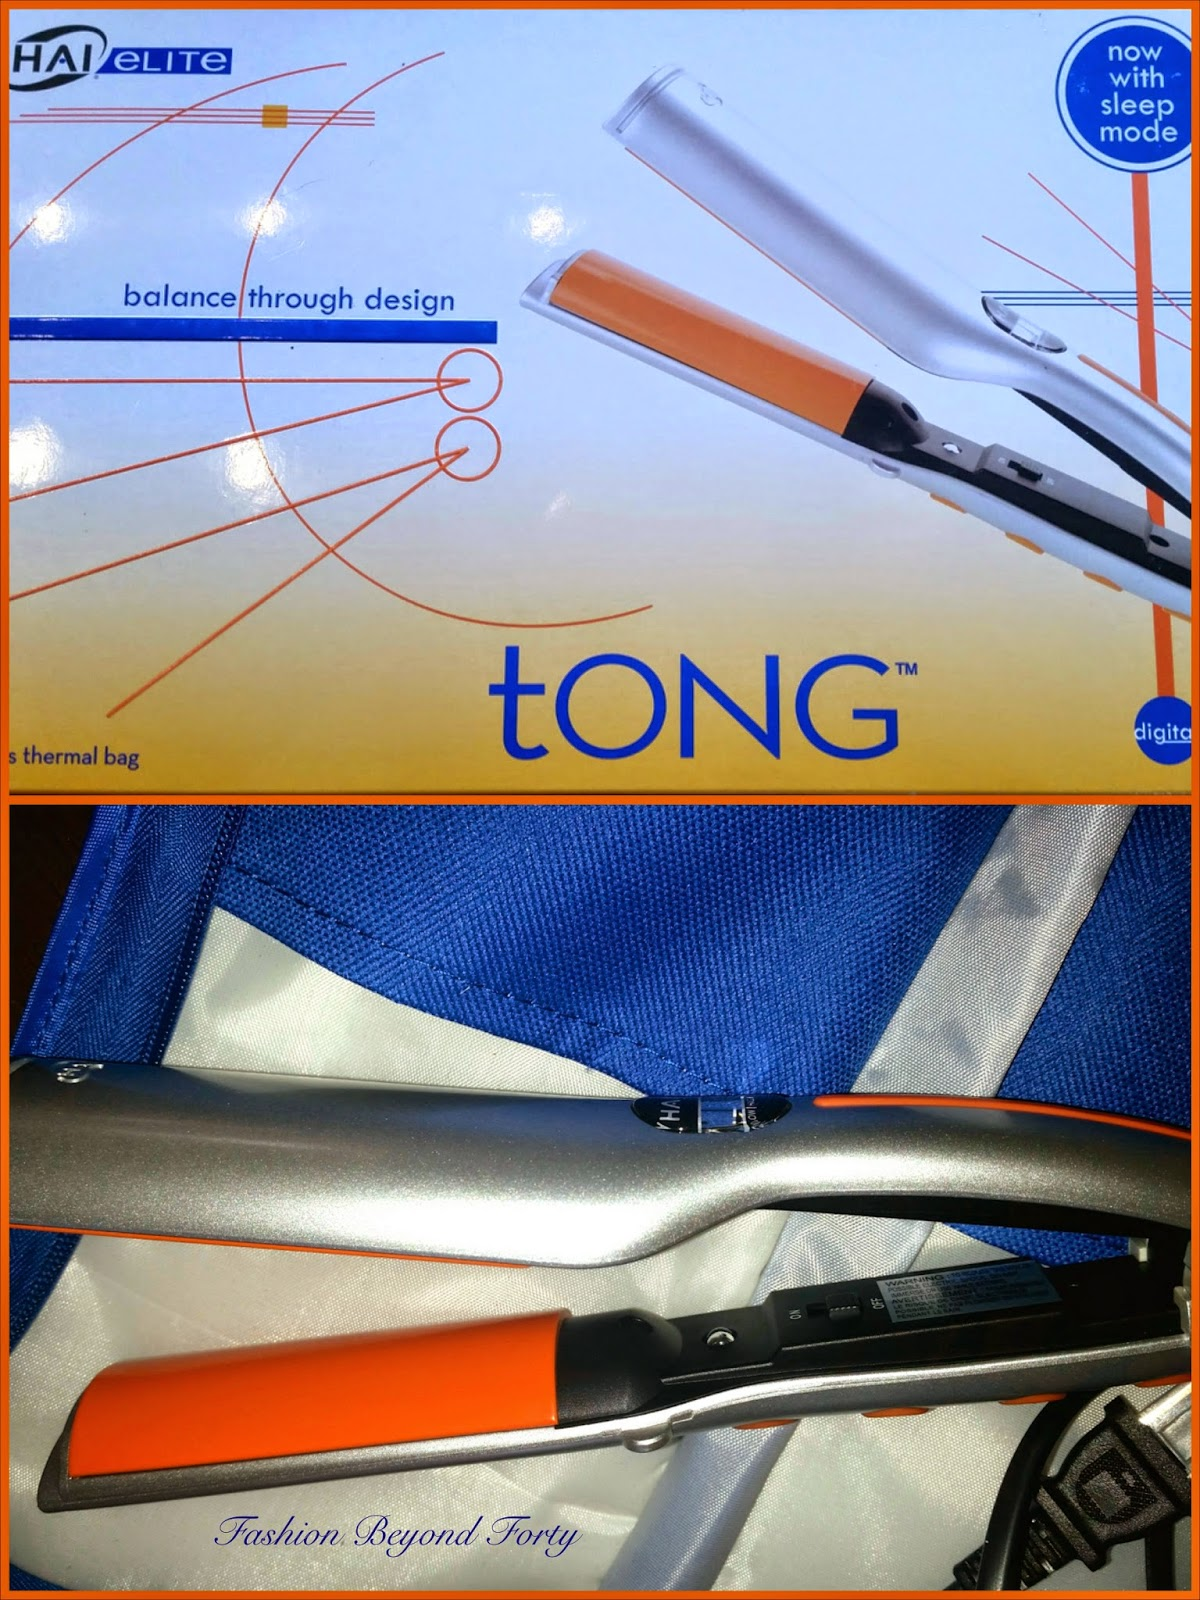 Hai Elite Tong with Rusk Flat Iron Spray Review and Drawing